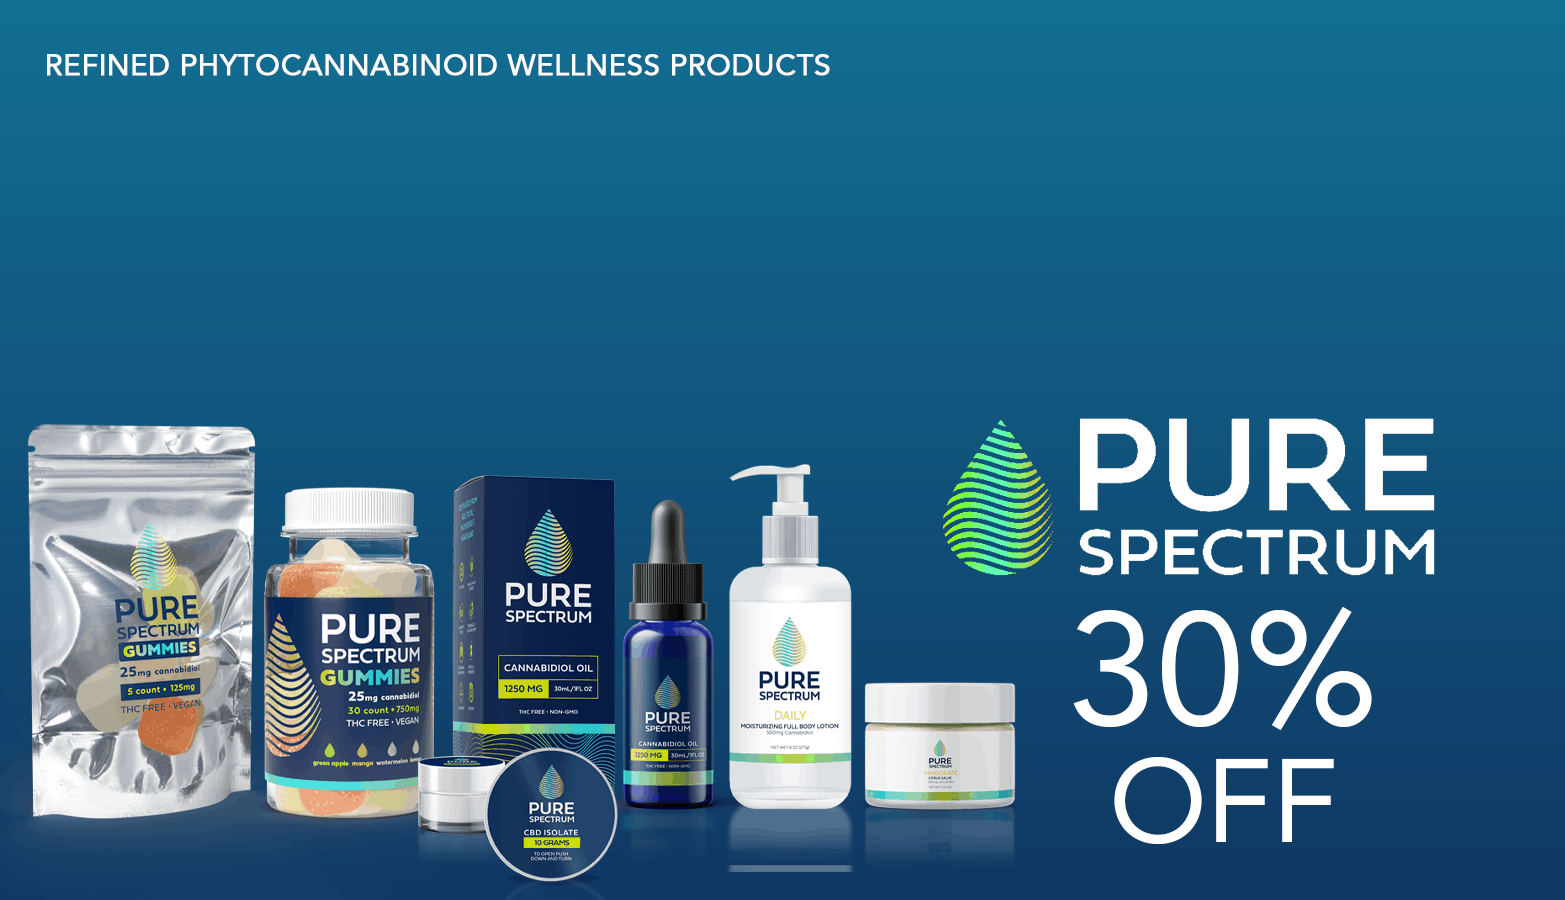 Pure Spectrum CBD Coupon Code 30 Percent Off Website